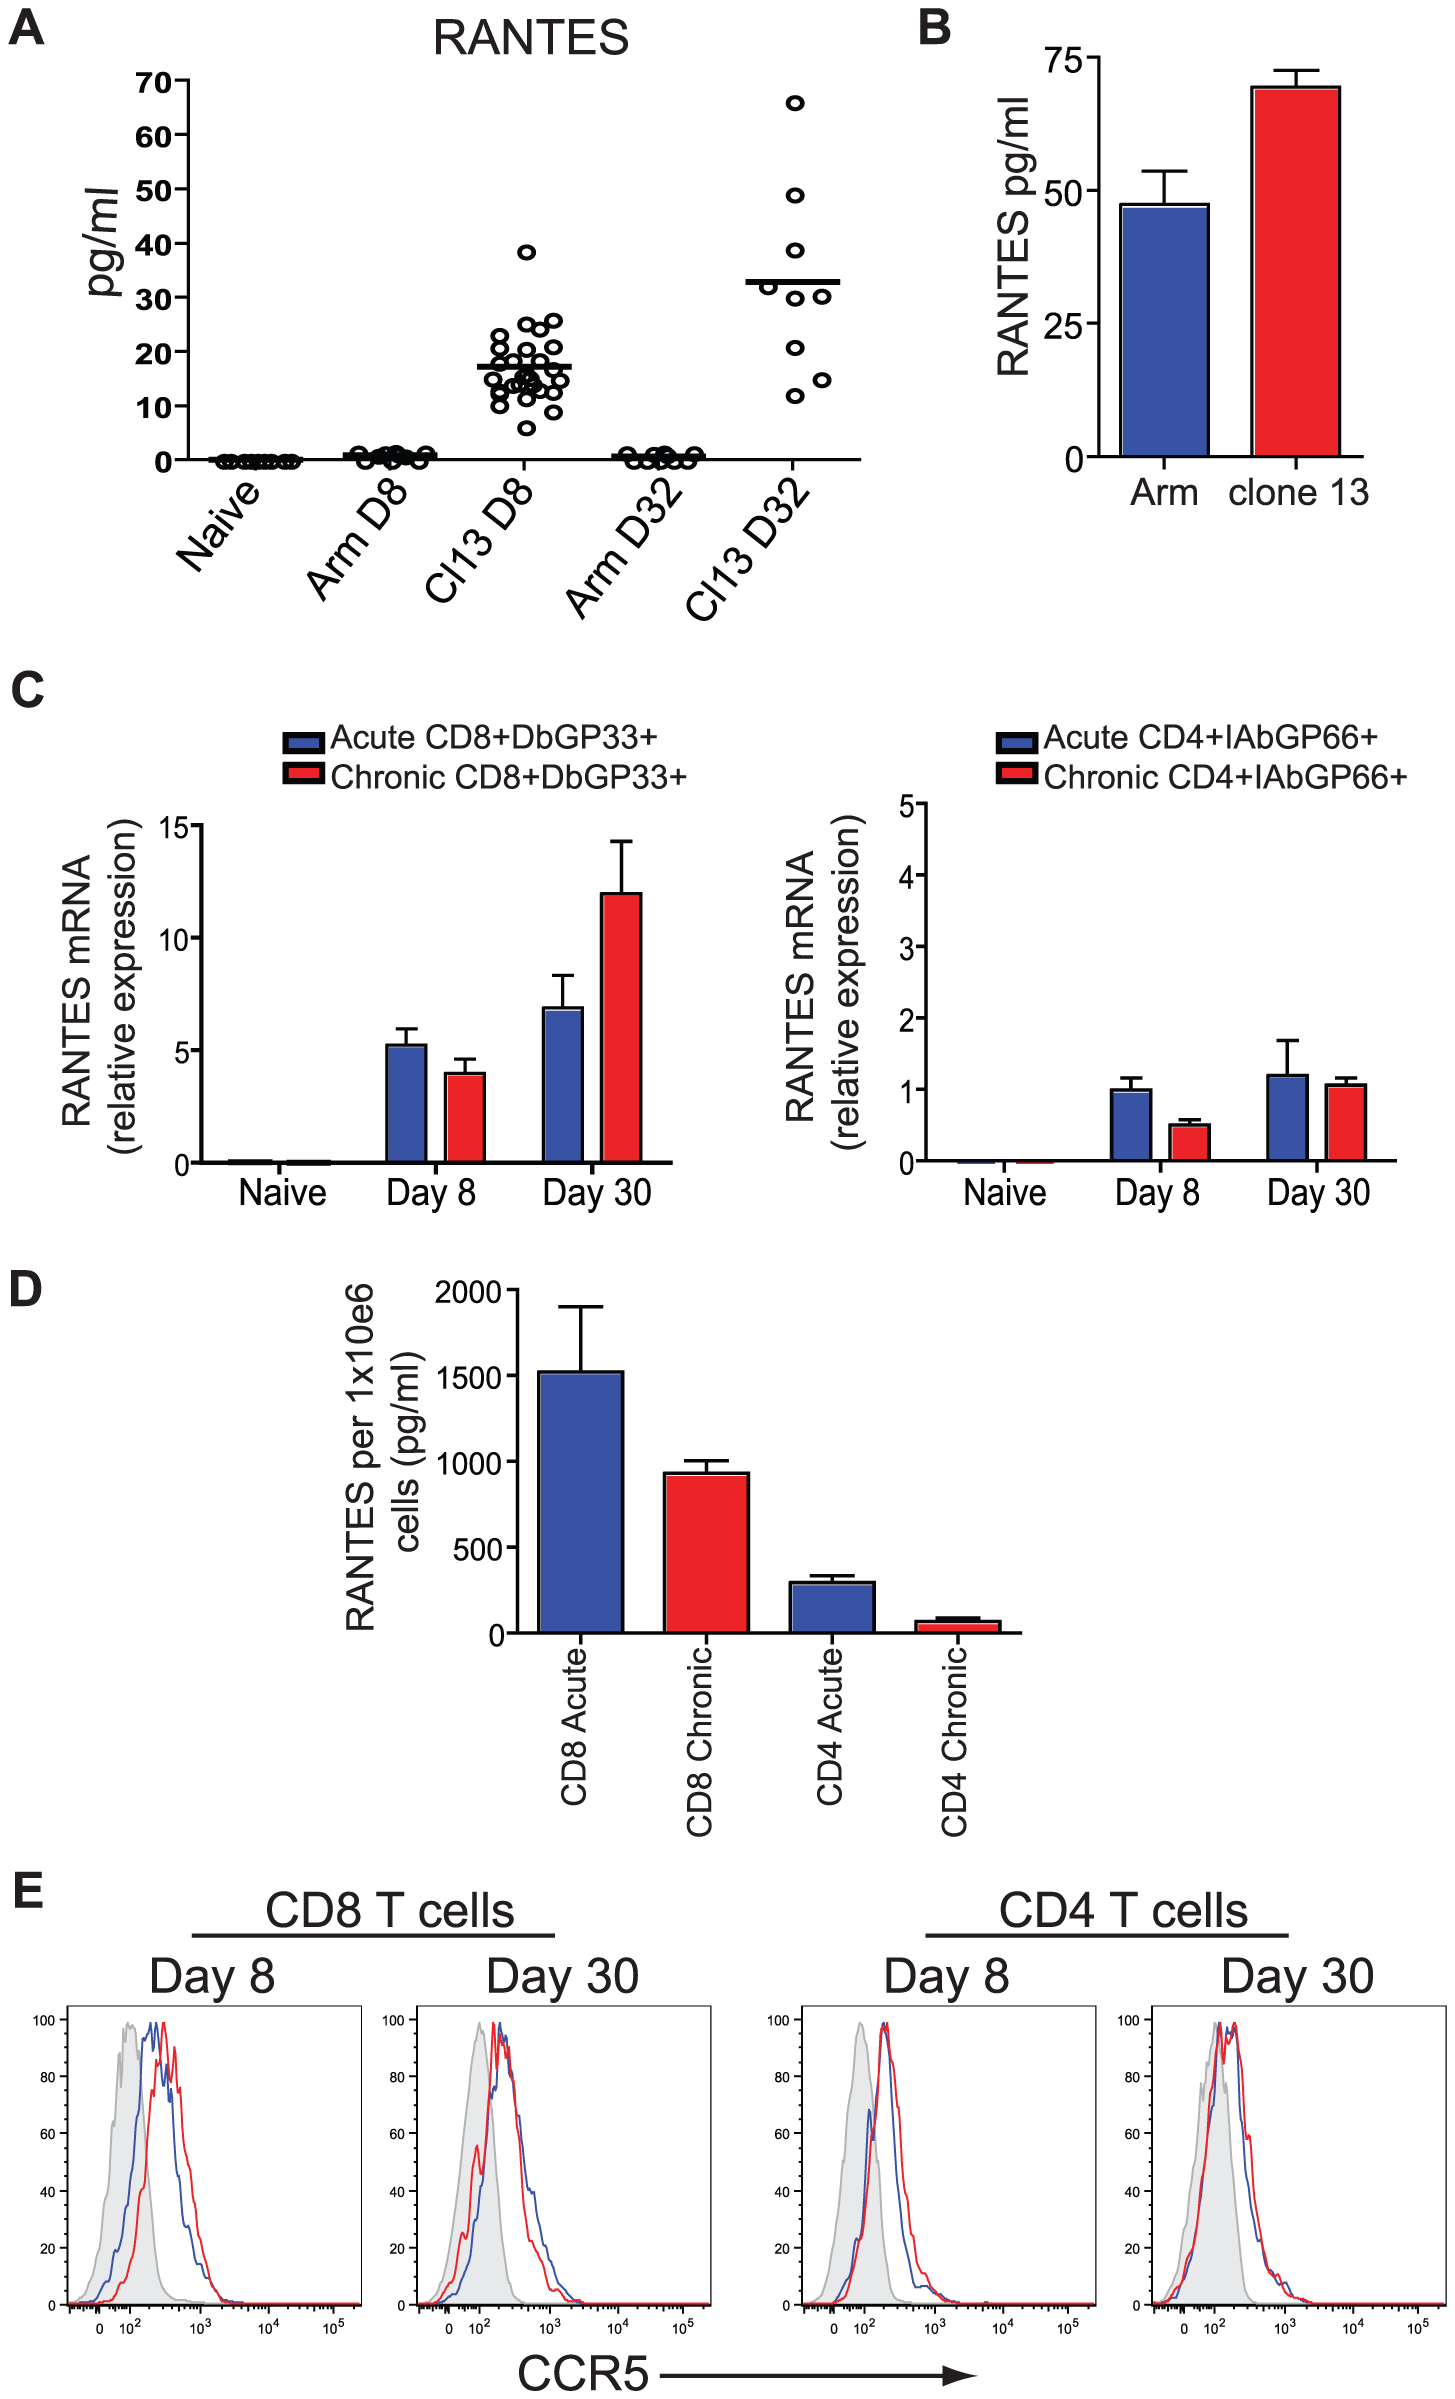 Higher concentrations of RANTES protein are present in the serum of mice infected with LCMV clone 13 compared to LCMV Armstrong and naïve mice.